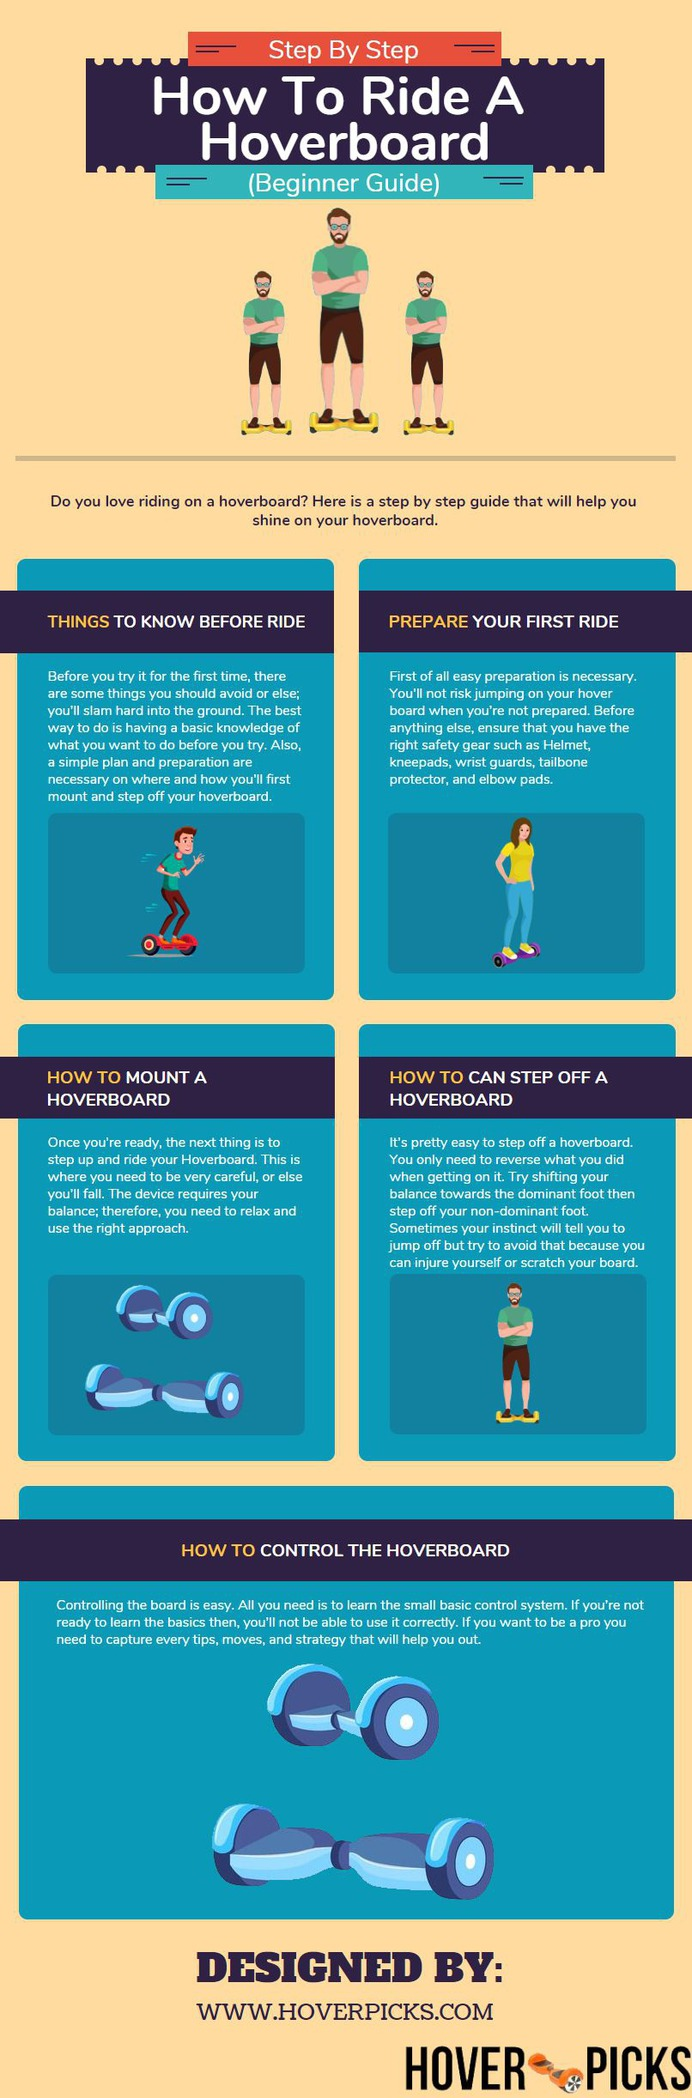 How To Ride A Hoverboard Infographic. Riding on a hover can be easy for you if you know the tricks. Read the helpful article and infographic to learn how to ride on a hoverboard as a beginner.